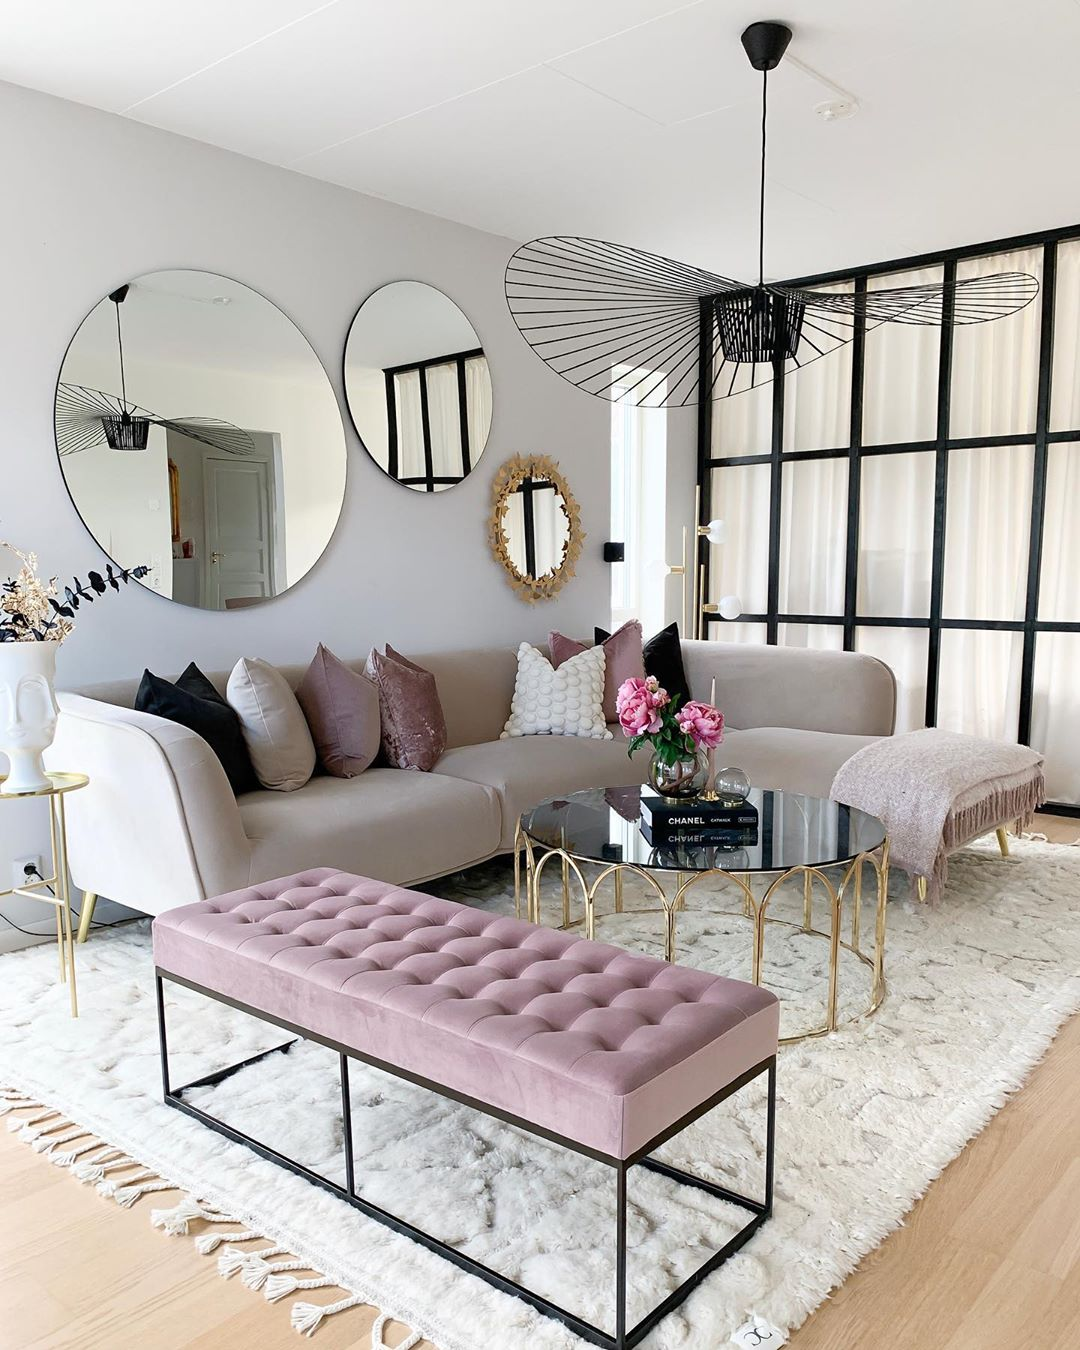 Home Trends 2020: 6 Top Interior Design Trends and Fashionable Ideas